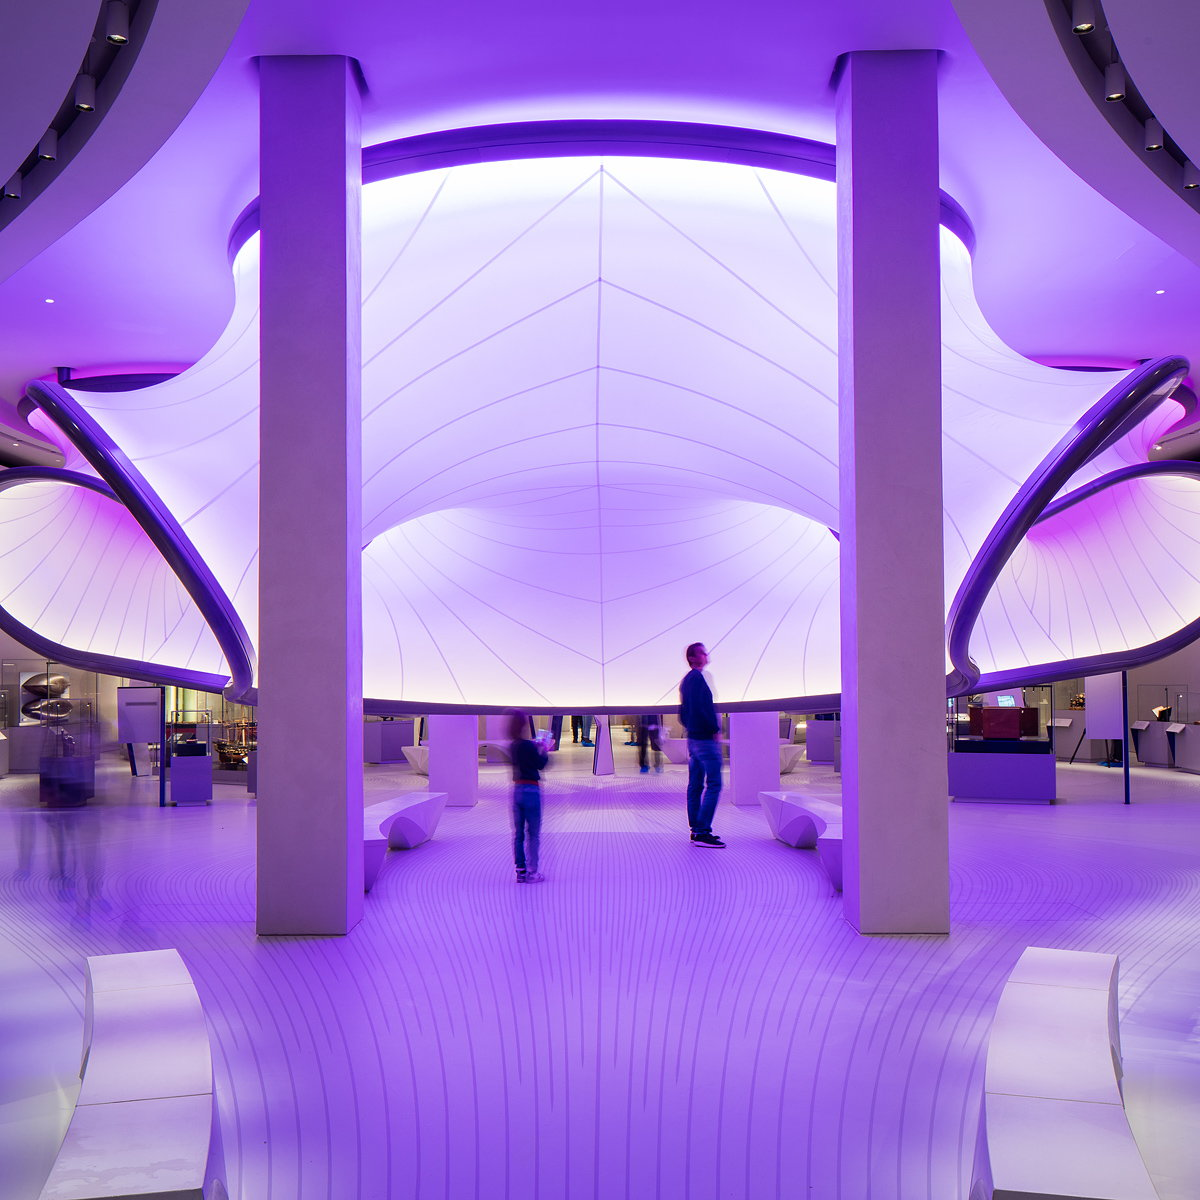 Mathematics - The Winton Gallery by Zaha Hadid Architects